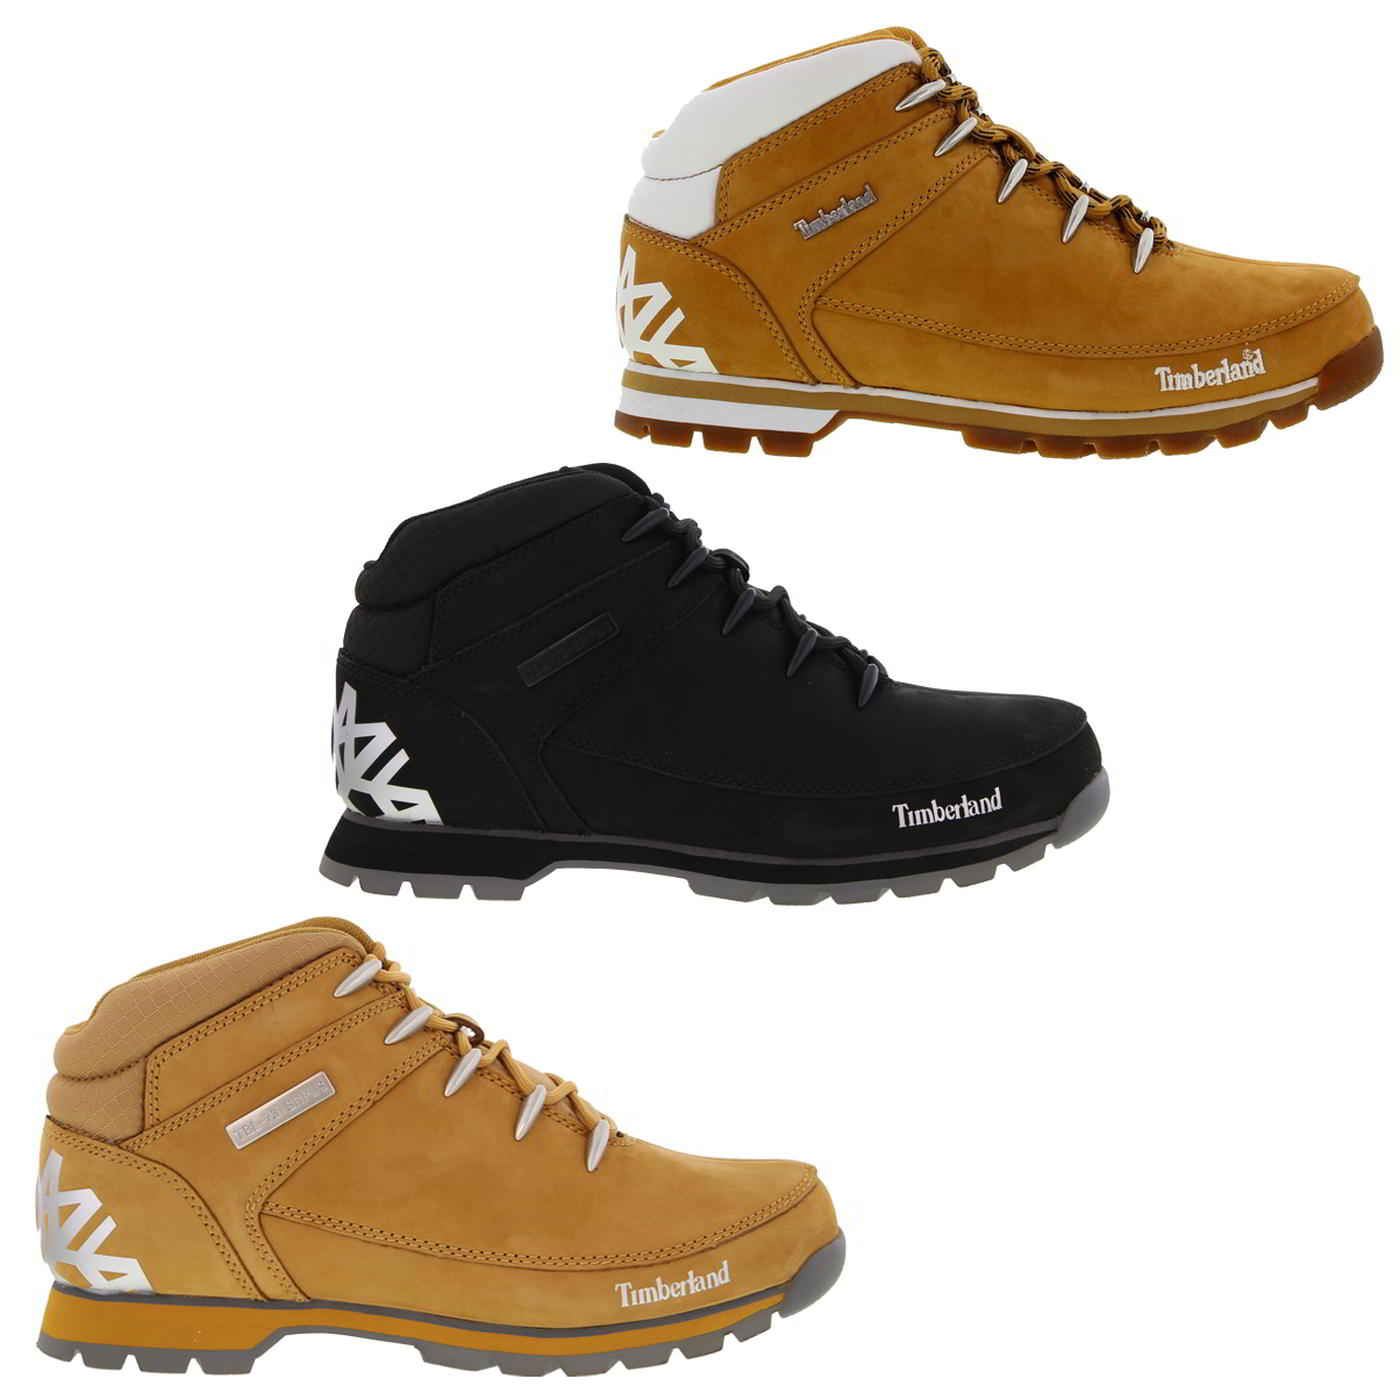 ... Classic Timberland branding adding extra character  Rubber outsole for  durability and grip f565236eeda